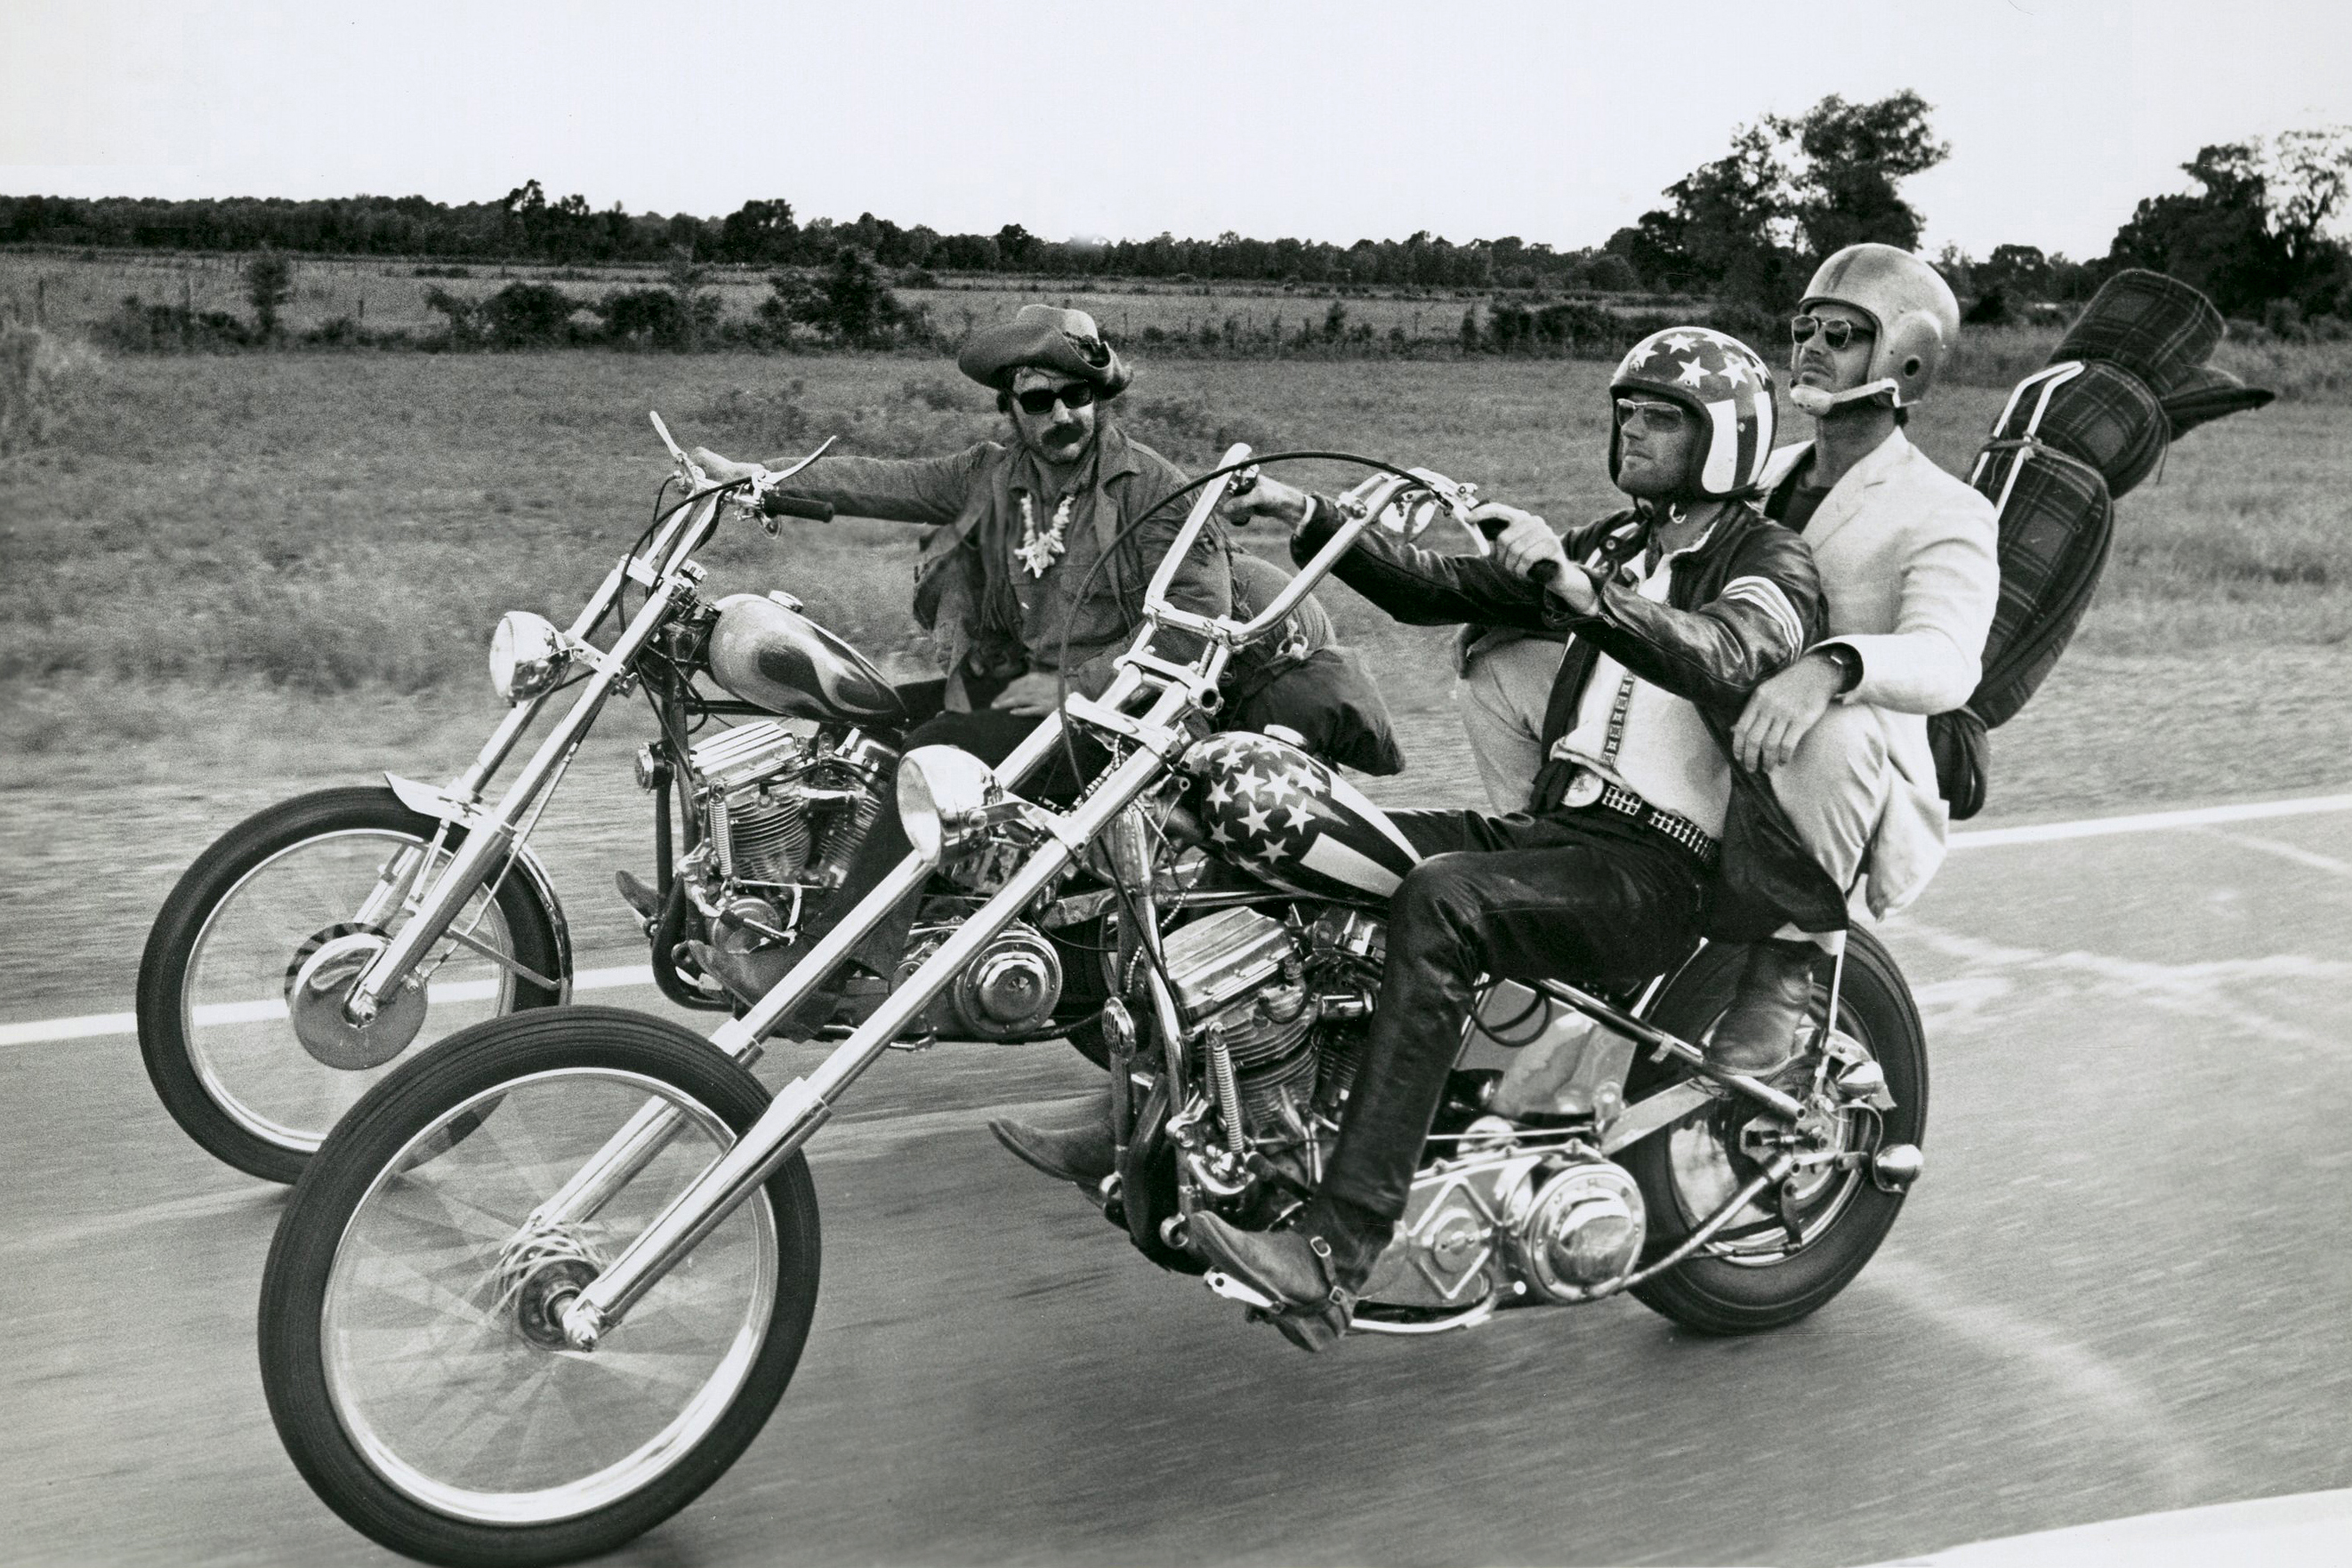 The most recognizable motorcycle in the world has two claimants, and both were built and certified as being